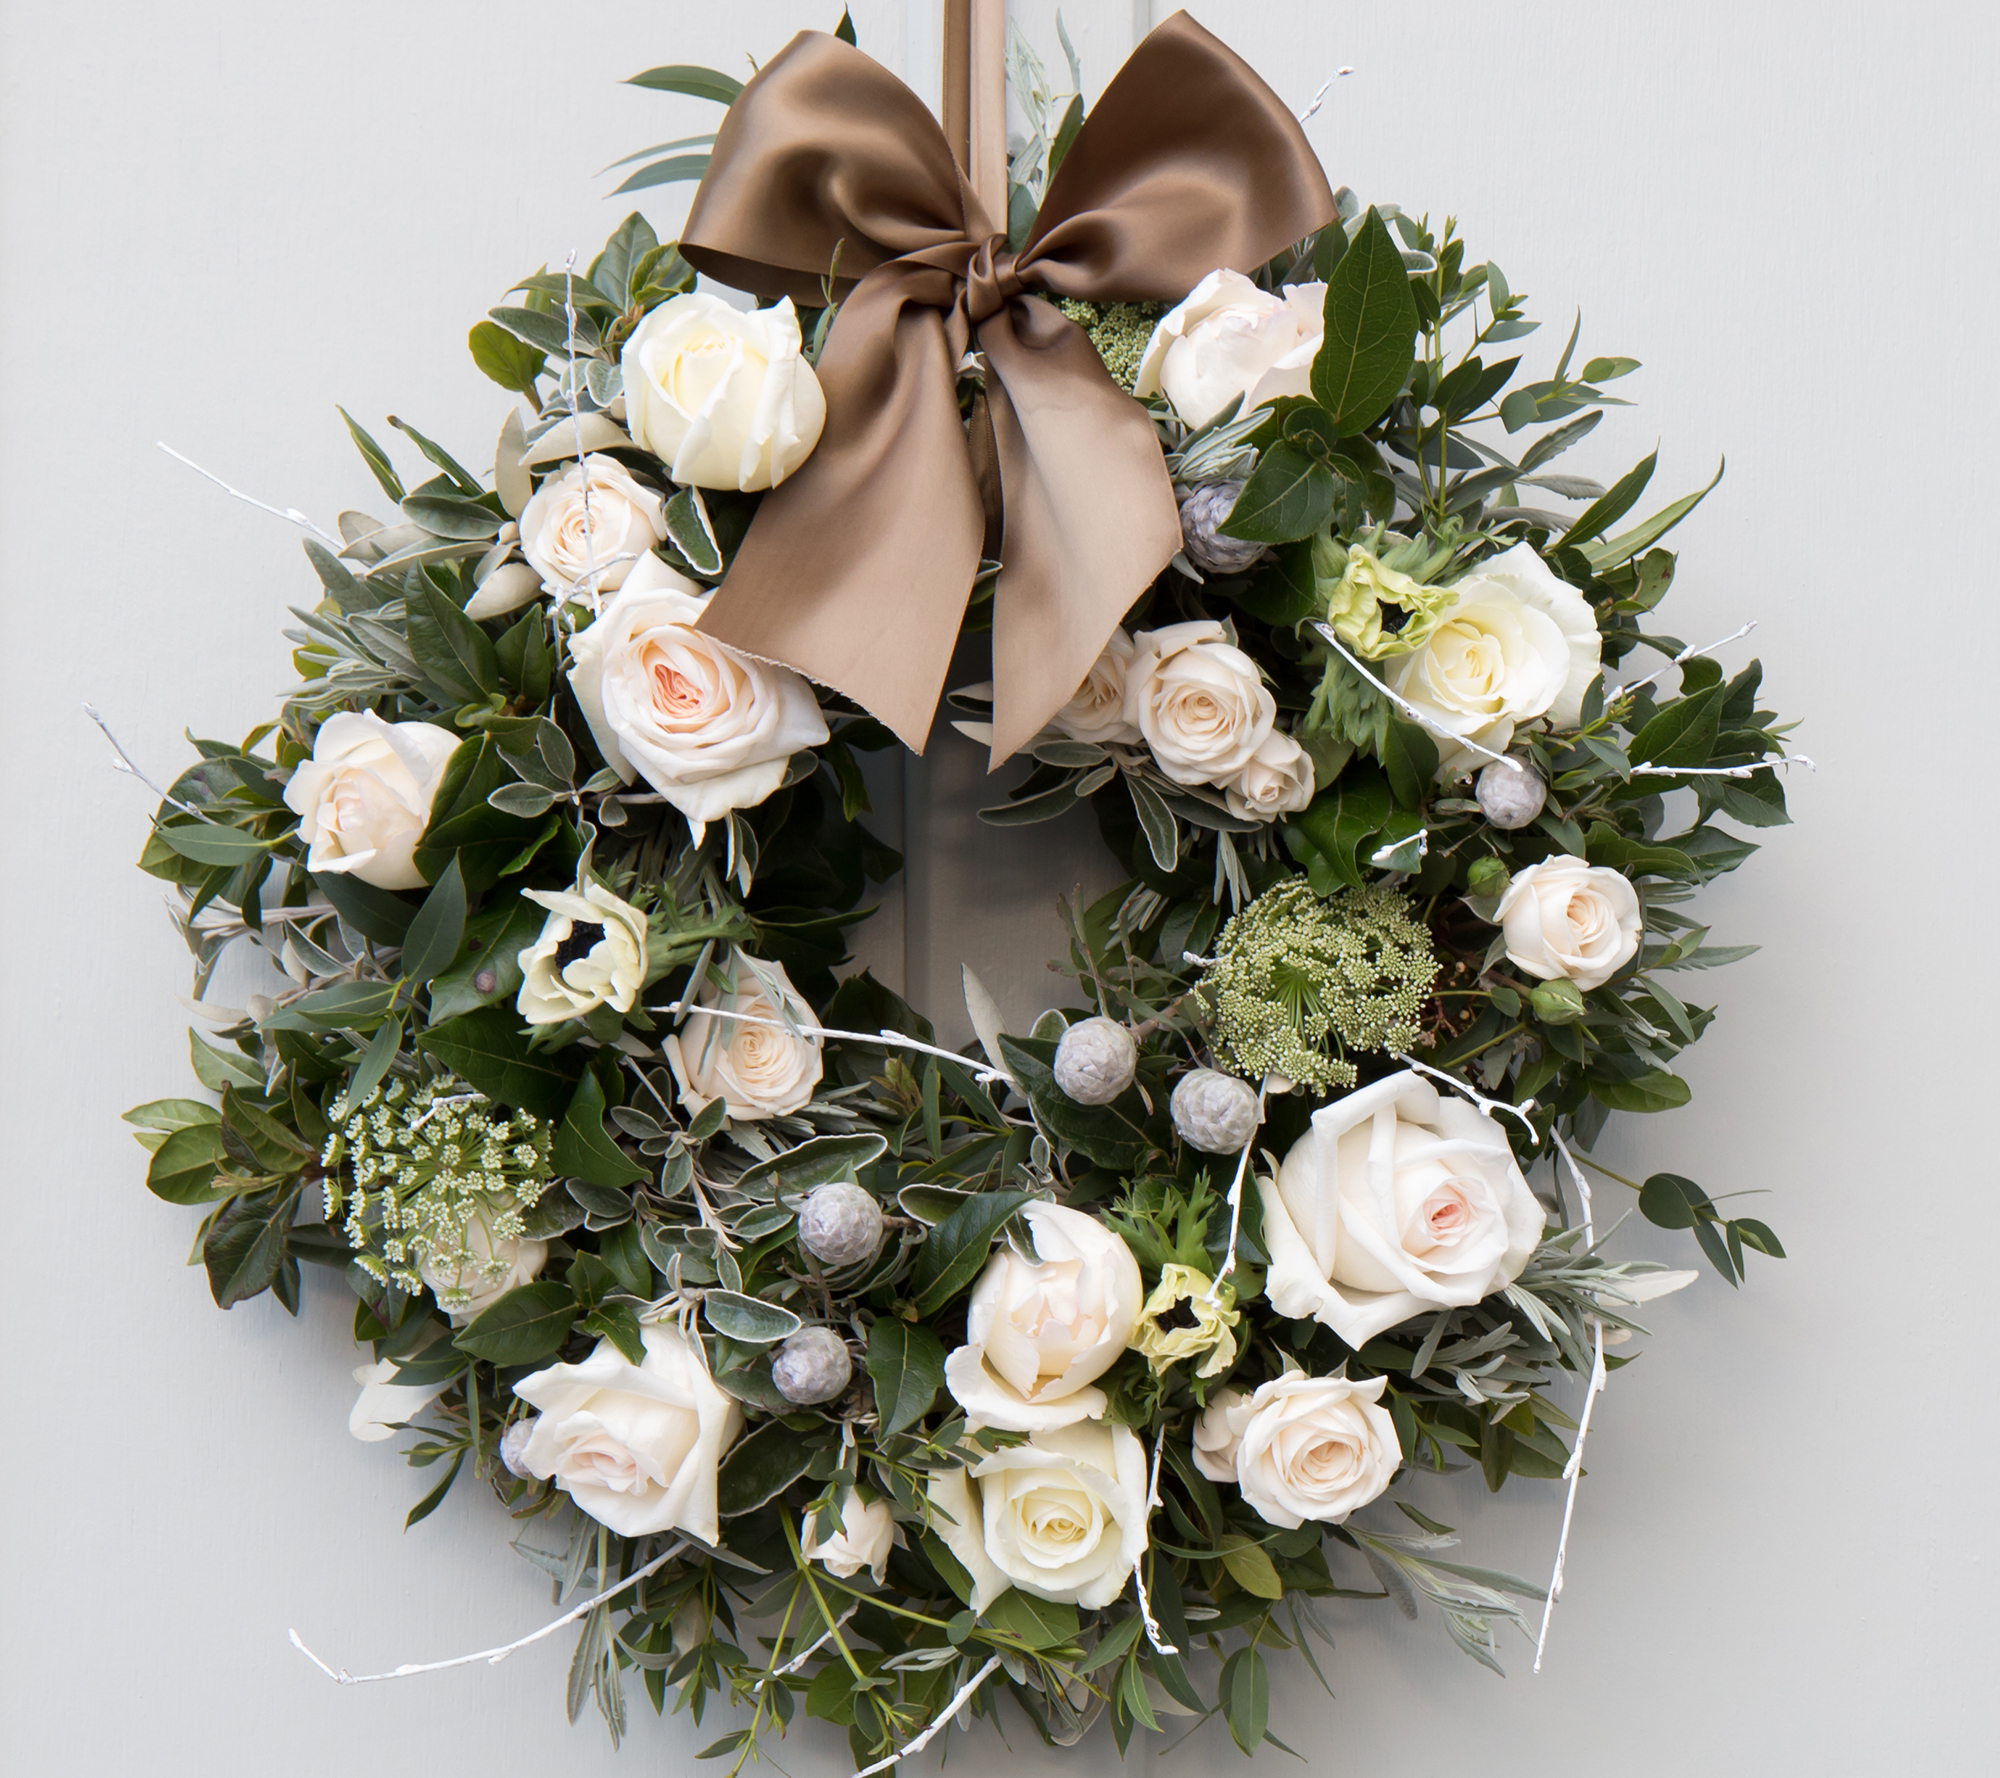 Win a beautiful Christmas wreath worth £115